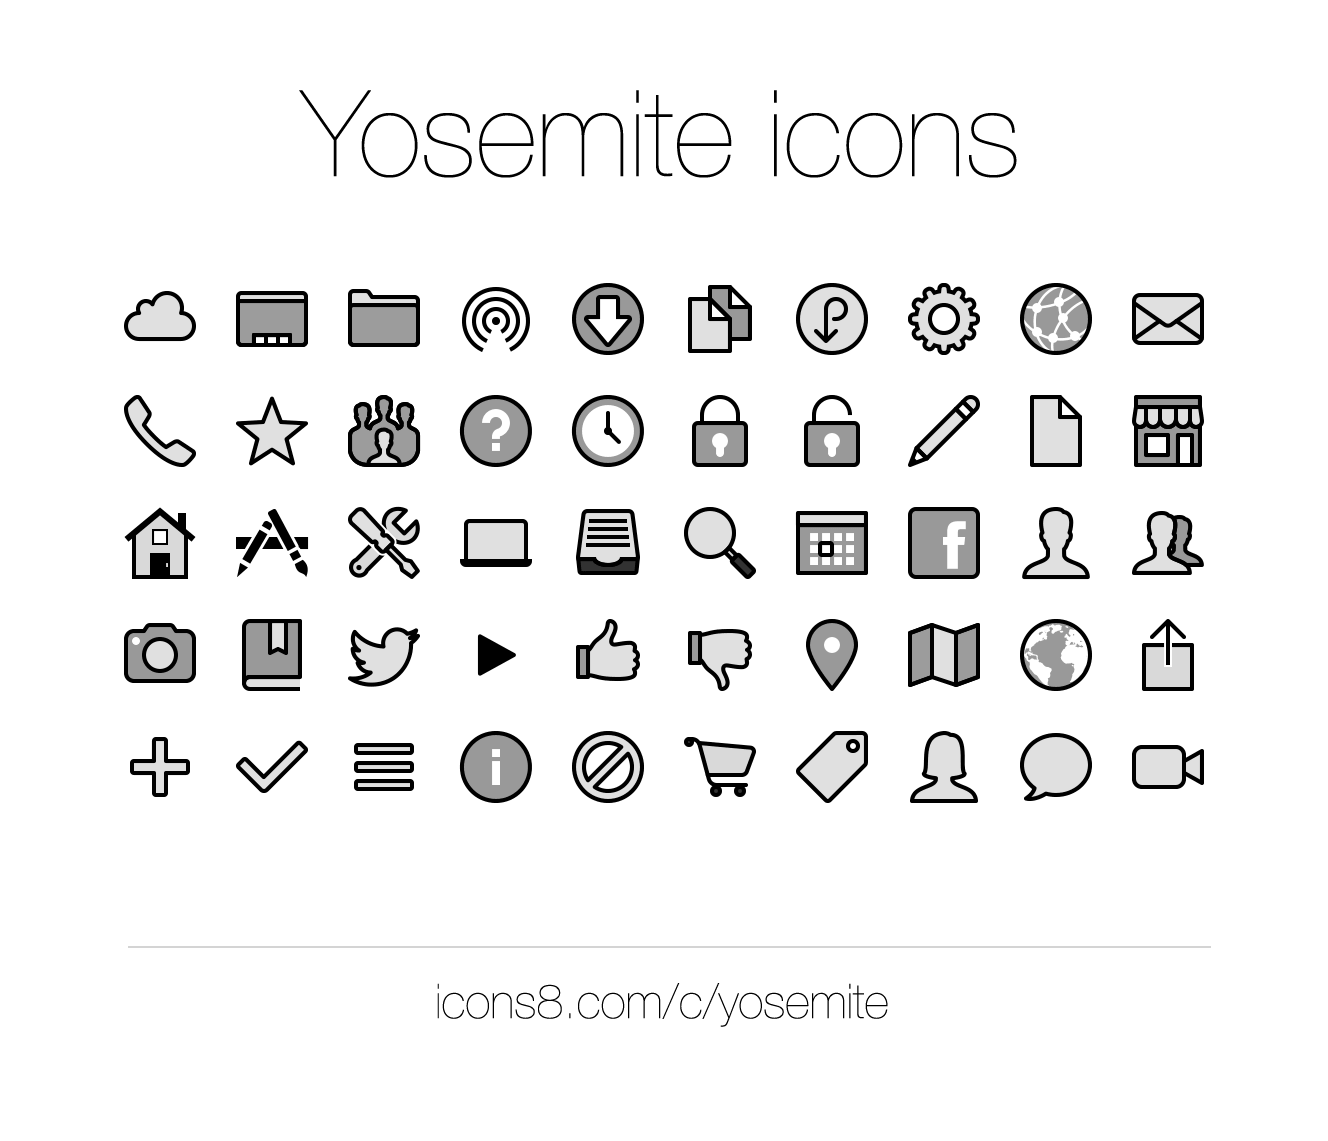 Icons8 macOS sidebar icons preview